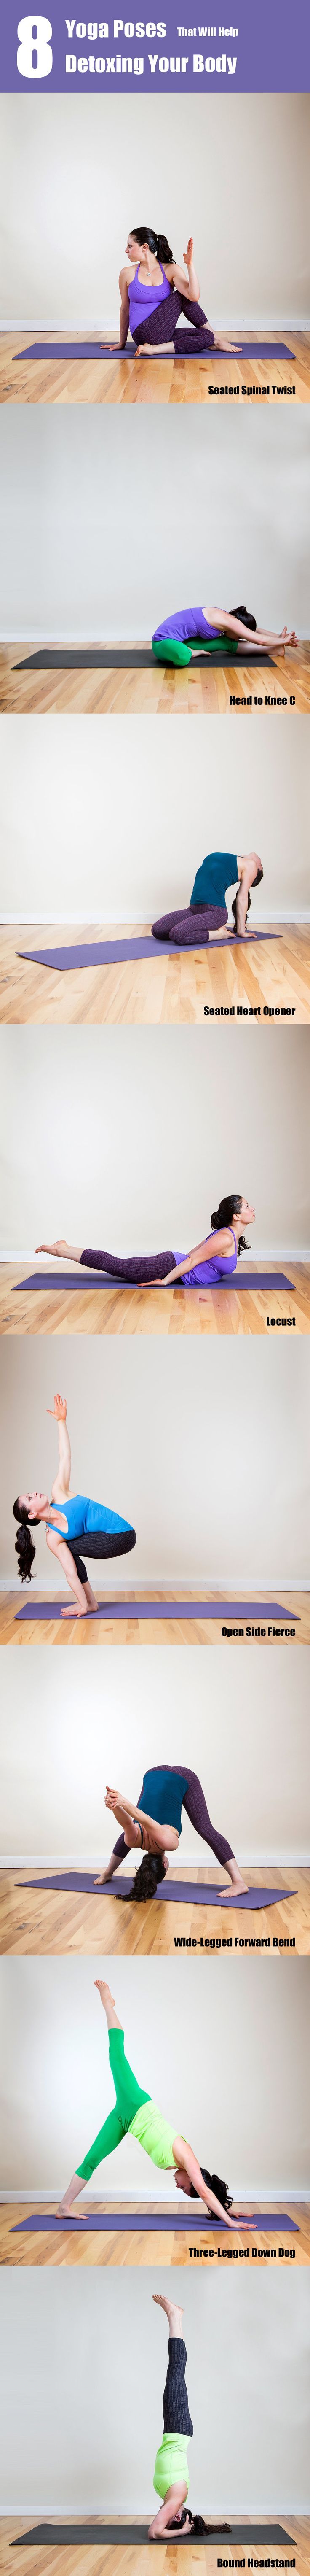 8 Yoga Poses For Beginners To Achieve A Detoxed And Healthy Body In 7 Days